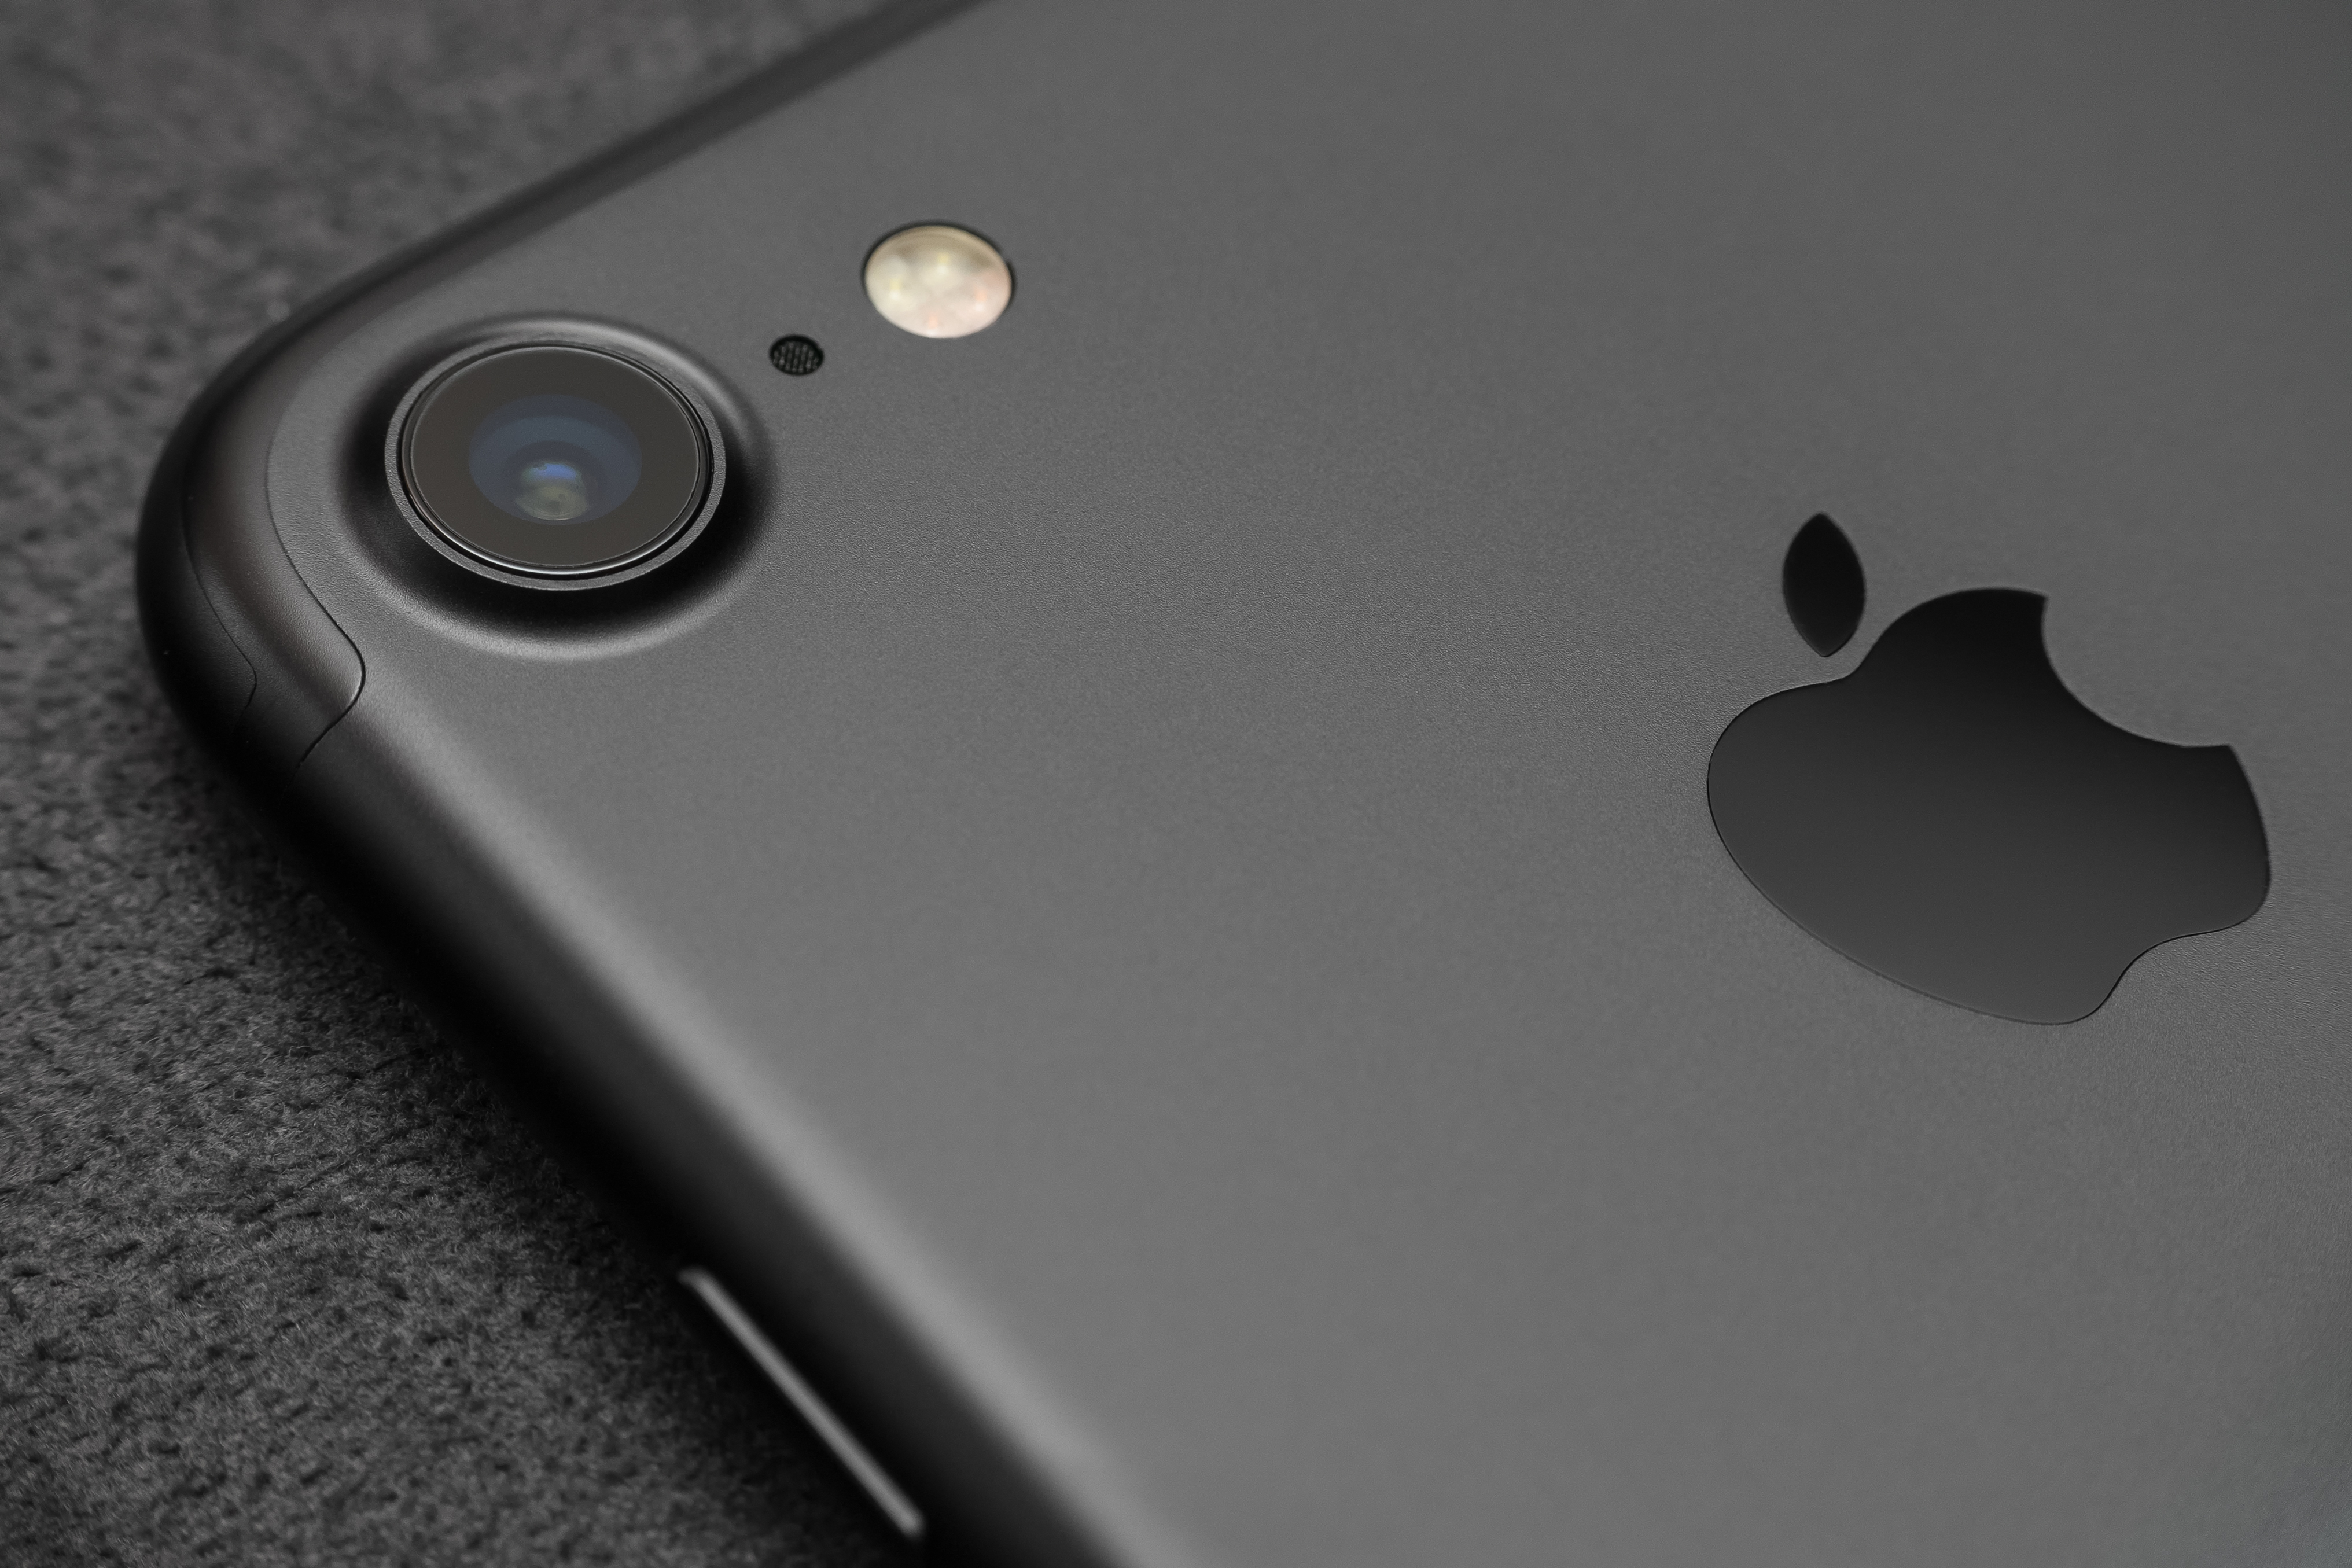 Close up camera lens view iPhone 7 black color